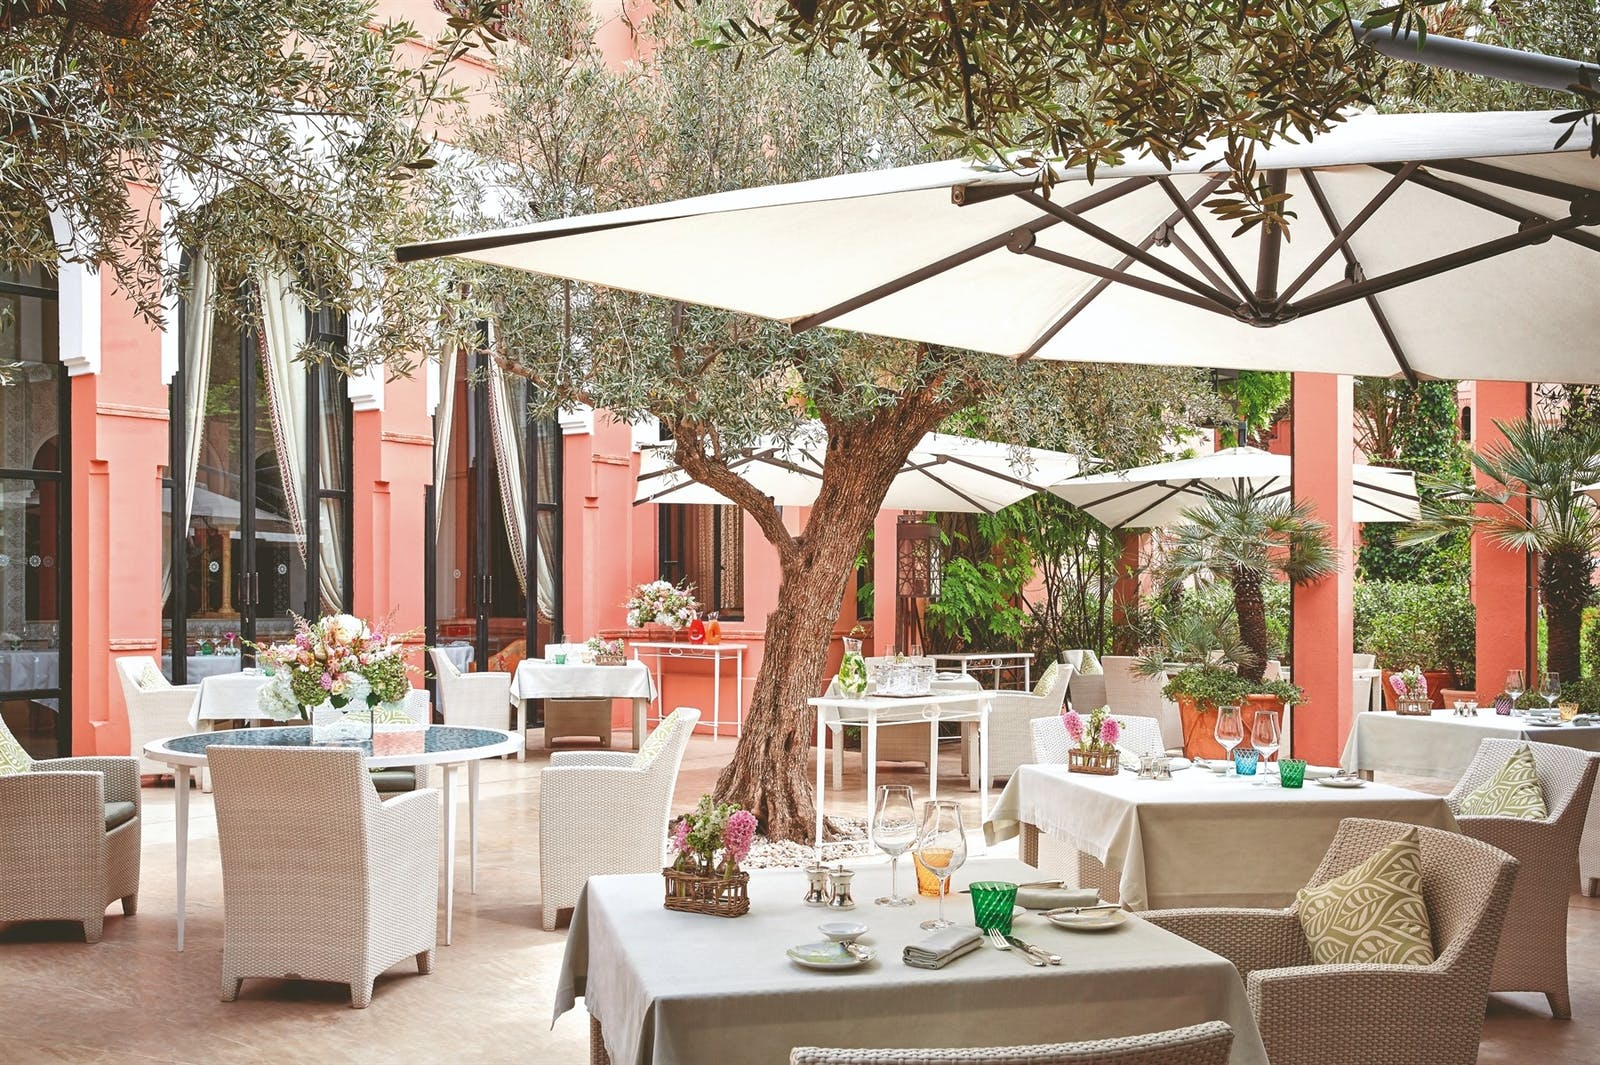 Al fresco dining at Royal Mansour, Marrakech